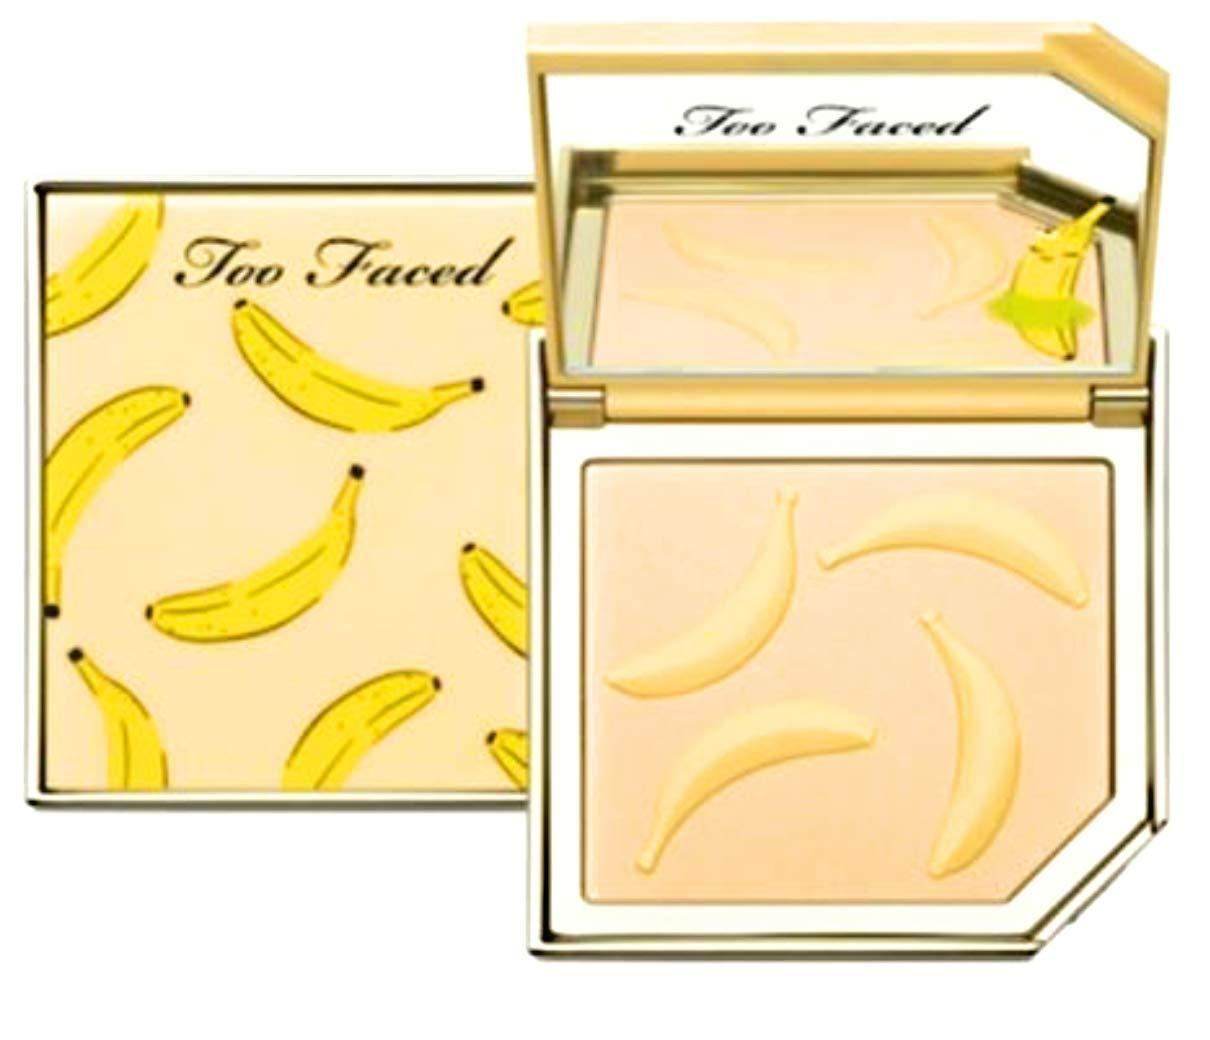 Пудра TOO FACED Tutti Frutti Its Bananas Powder